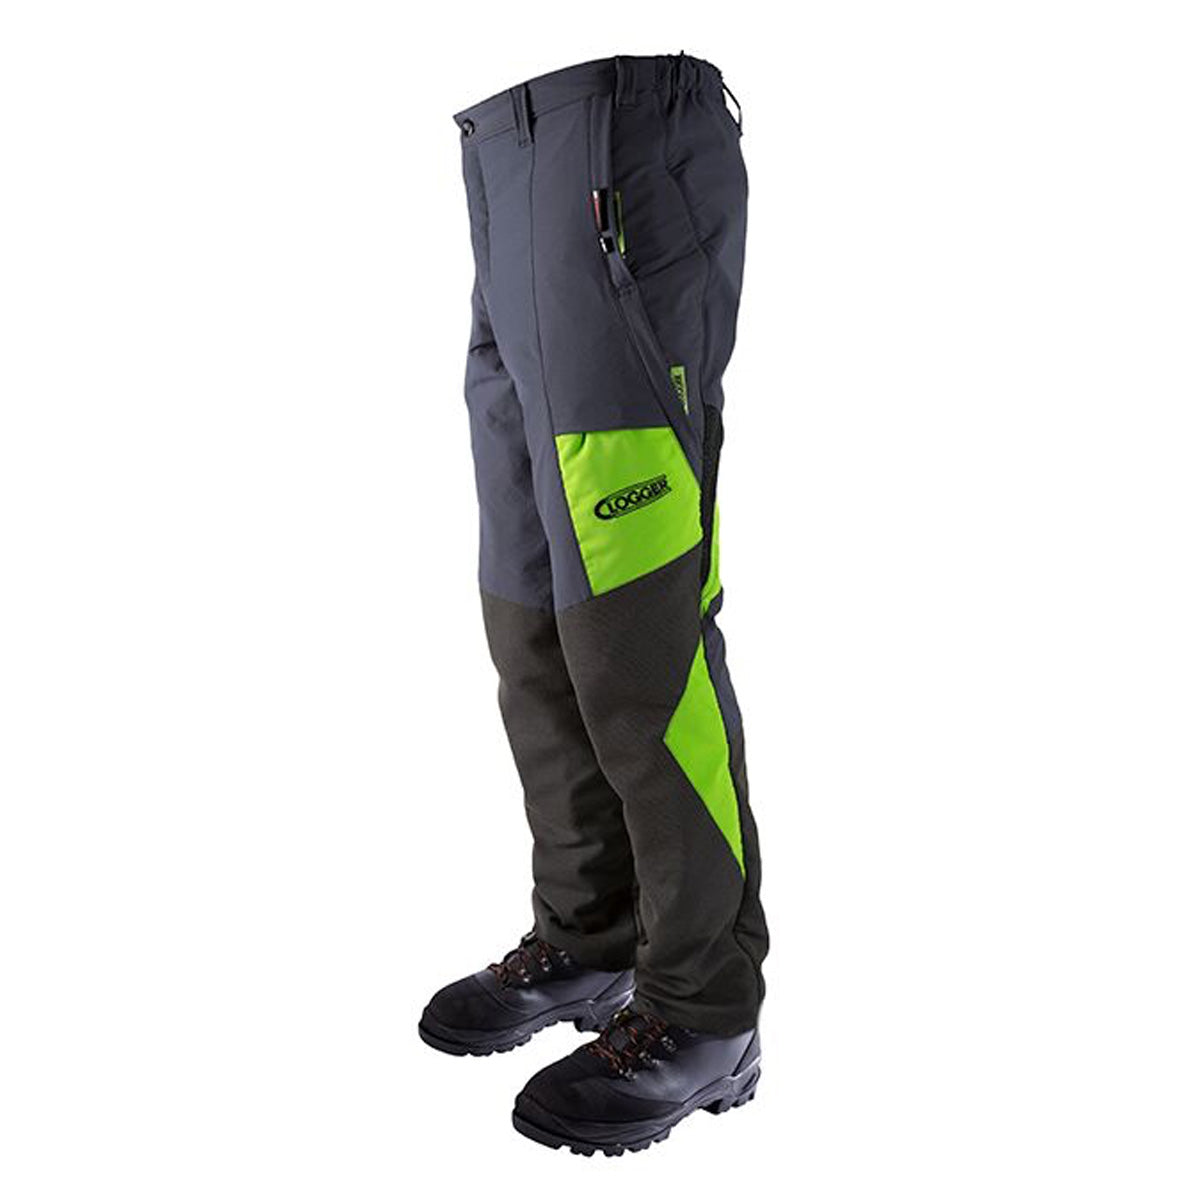 Swedepro chainsaw pants lavamani hand cleaner